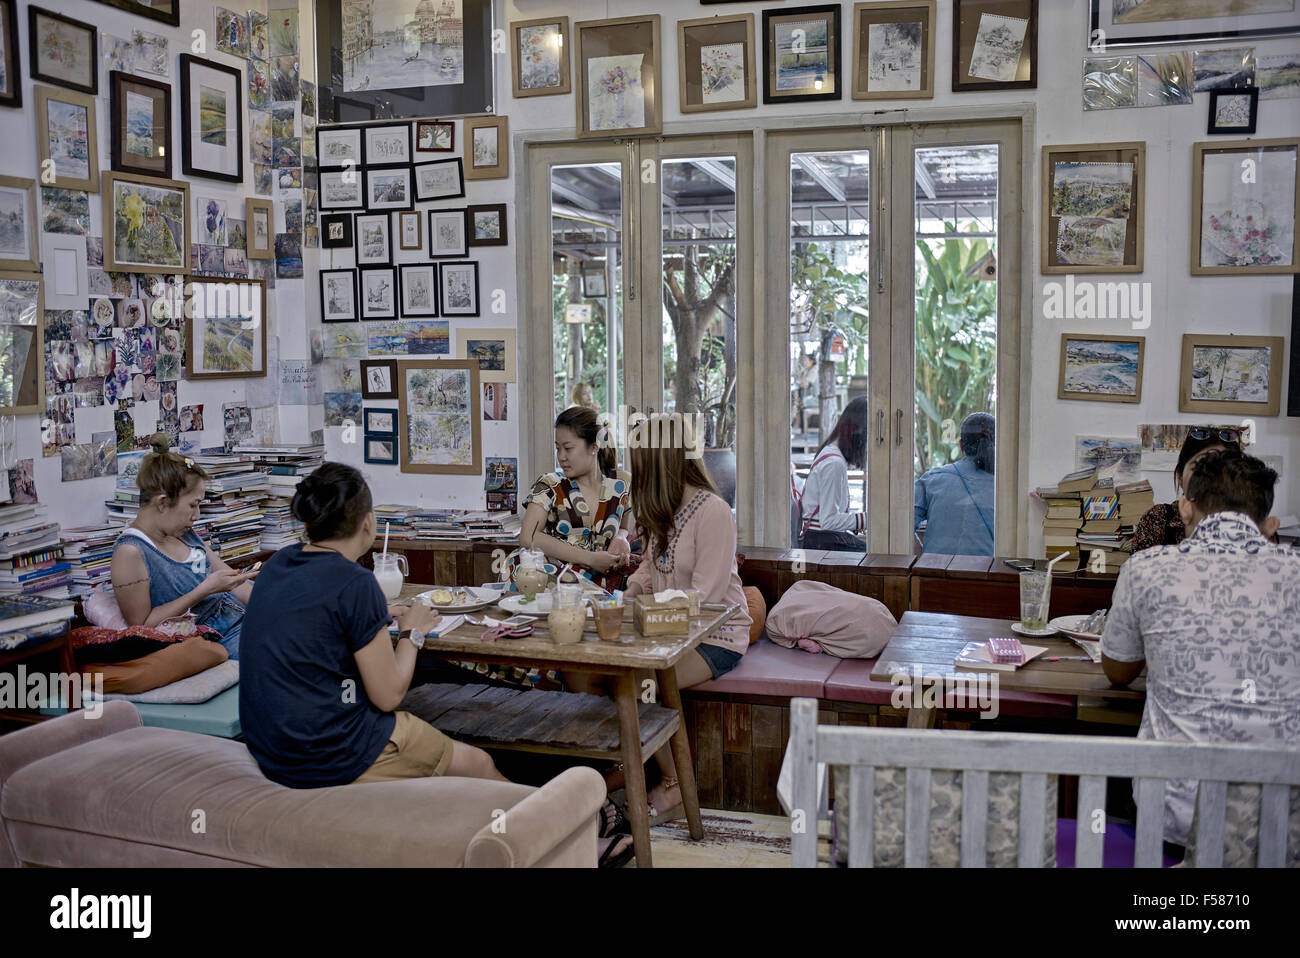 Art Cafe Interior With Walls Adorned Of Artists Work Pattaya Stock Photo Alamy